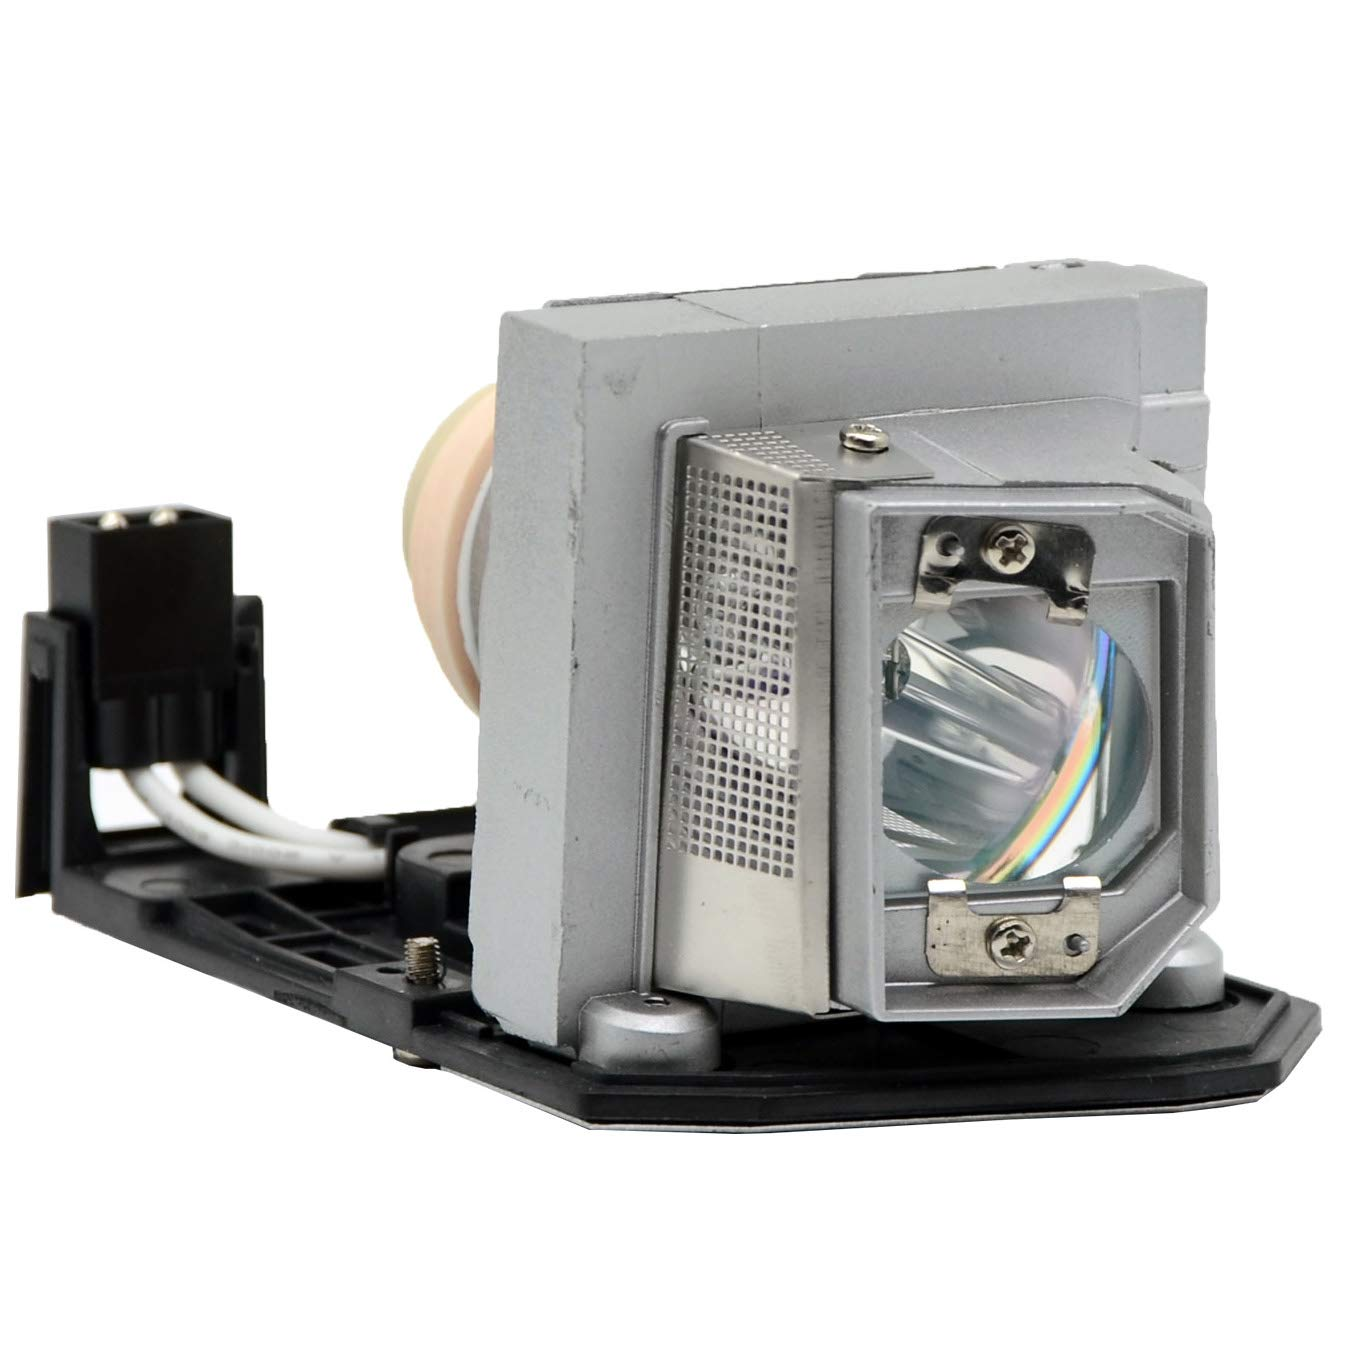 Litance BL-FU240A Replacement Lamp for Optoma HD25, HD25-LV, HD30B DH1011, EH300 Projectors